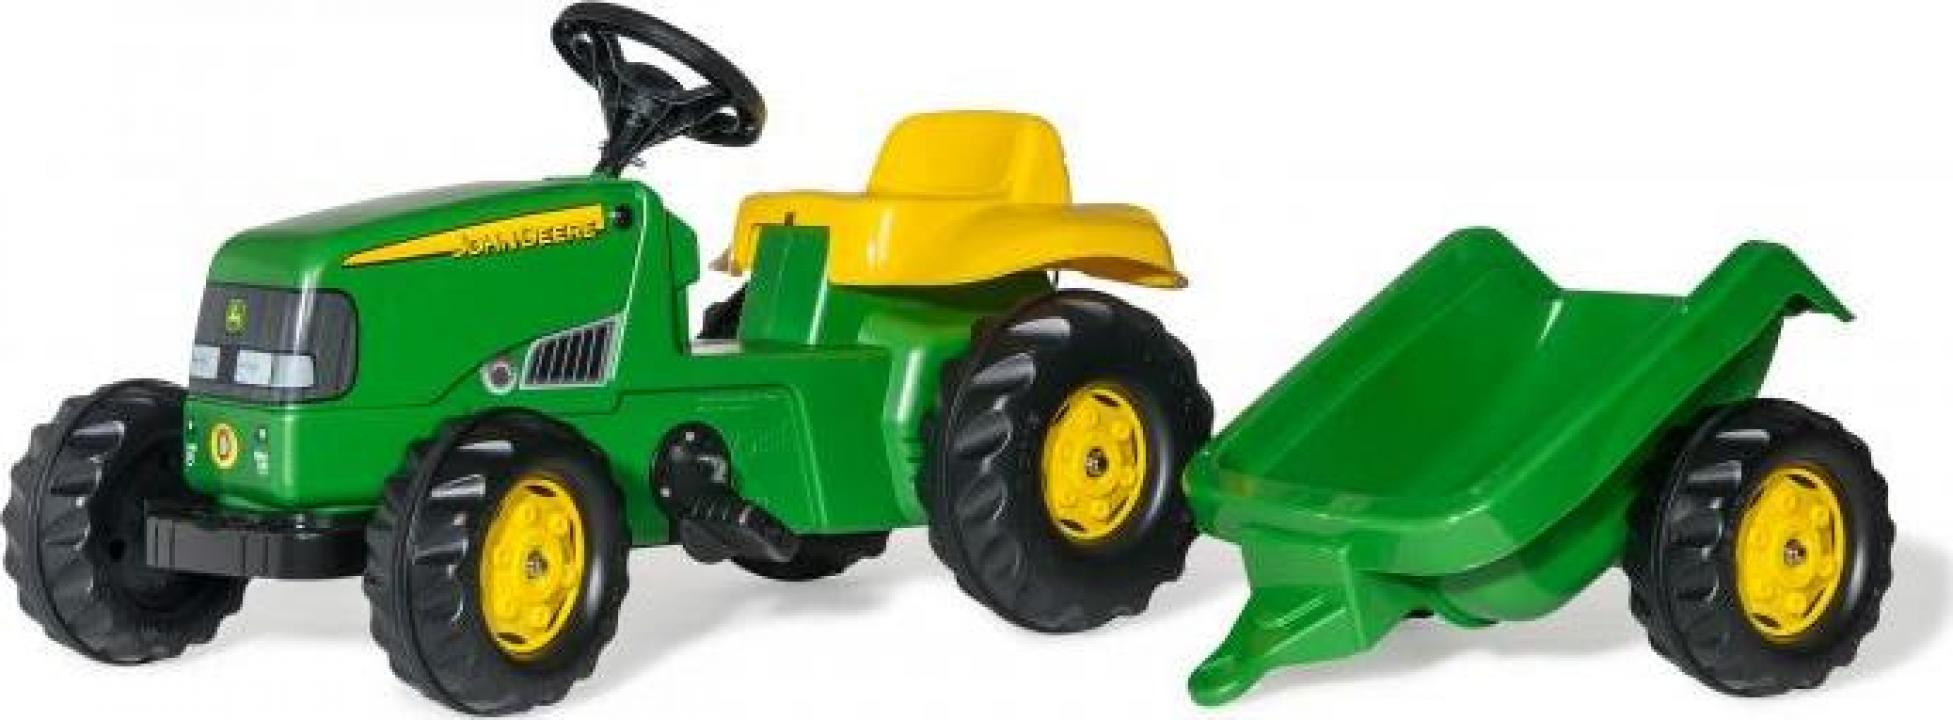 Jucarie tractor cu pedale si remorca Rolly Toys RollyKid